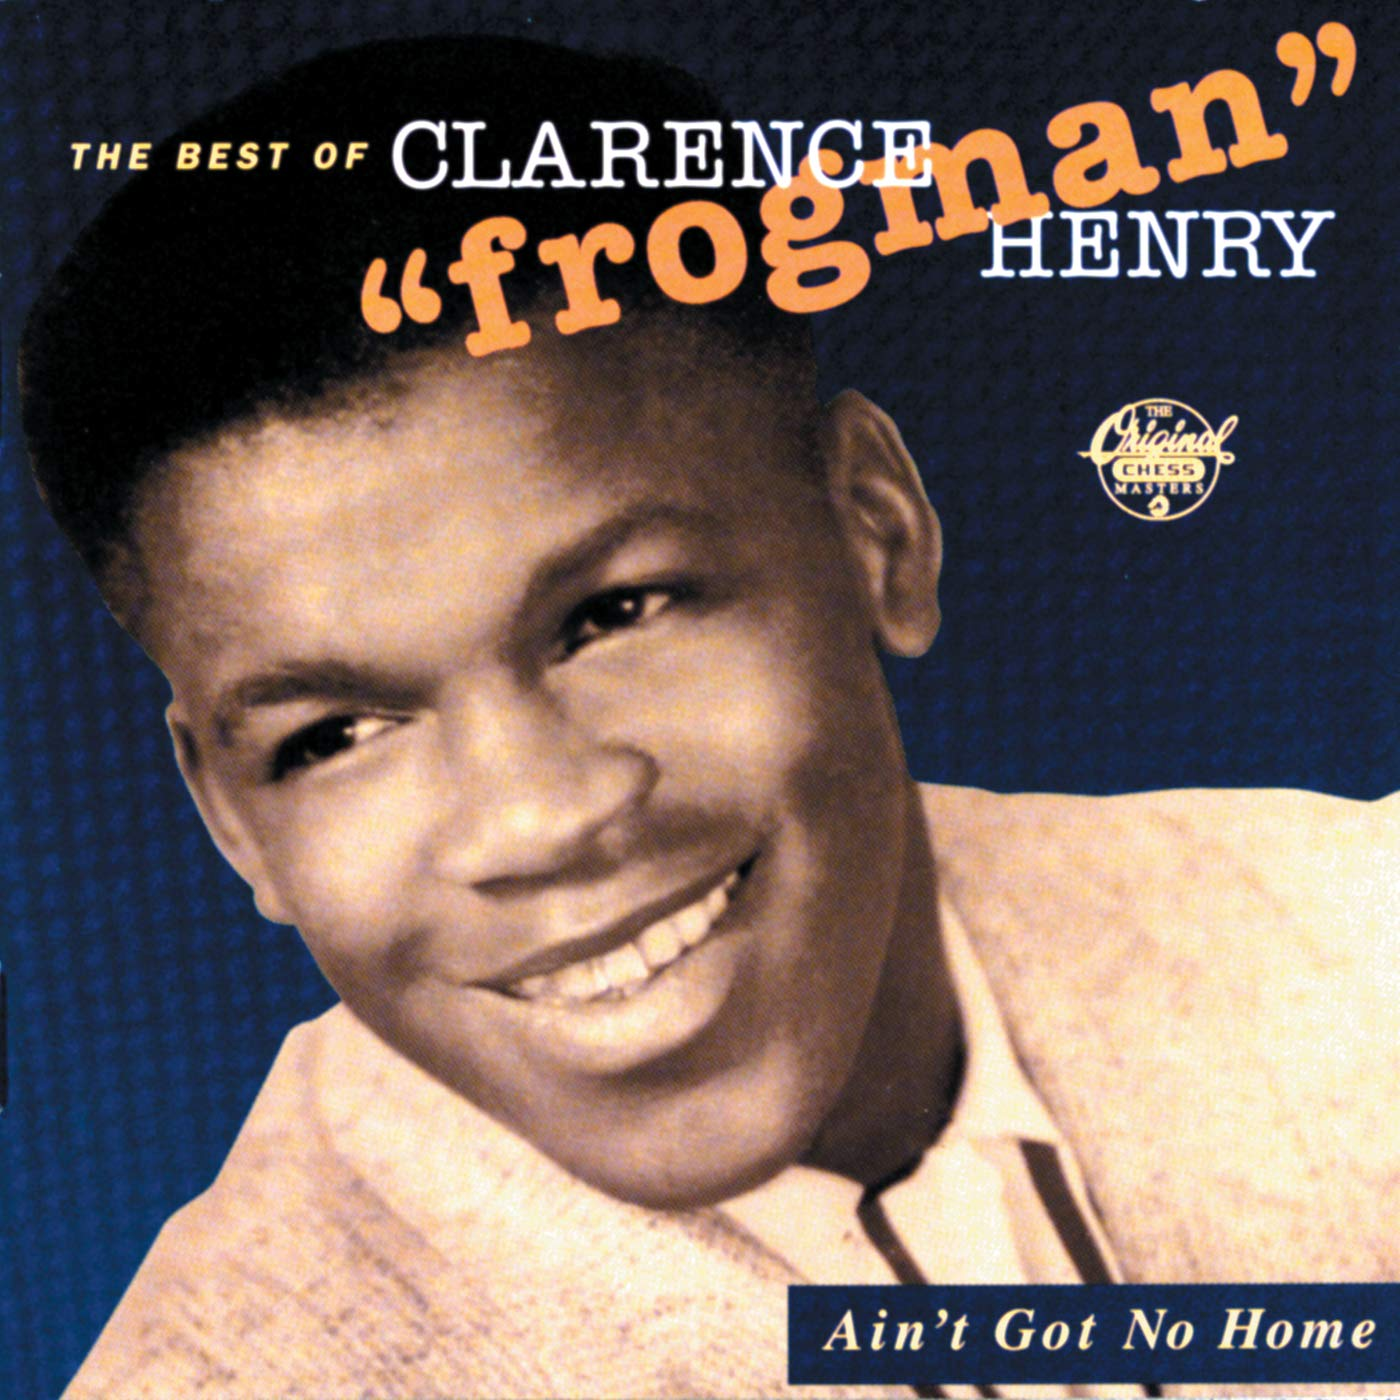 Clarence Frogman Henry – The Best Of Clarence Frogman Henry (2016) [FLAC]